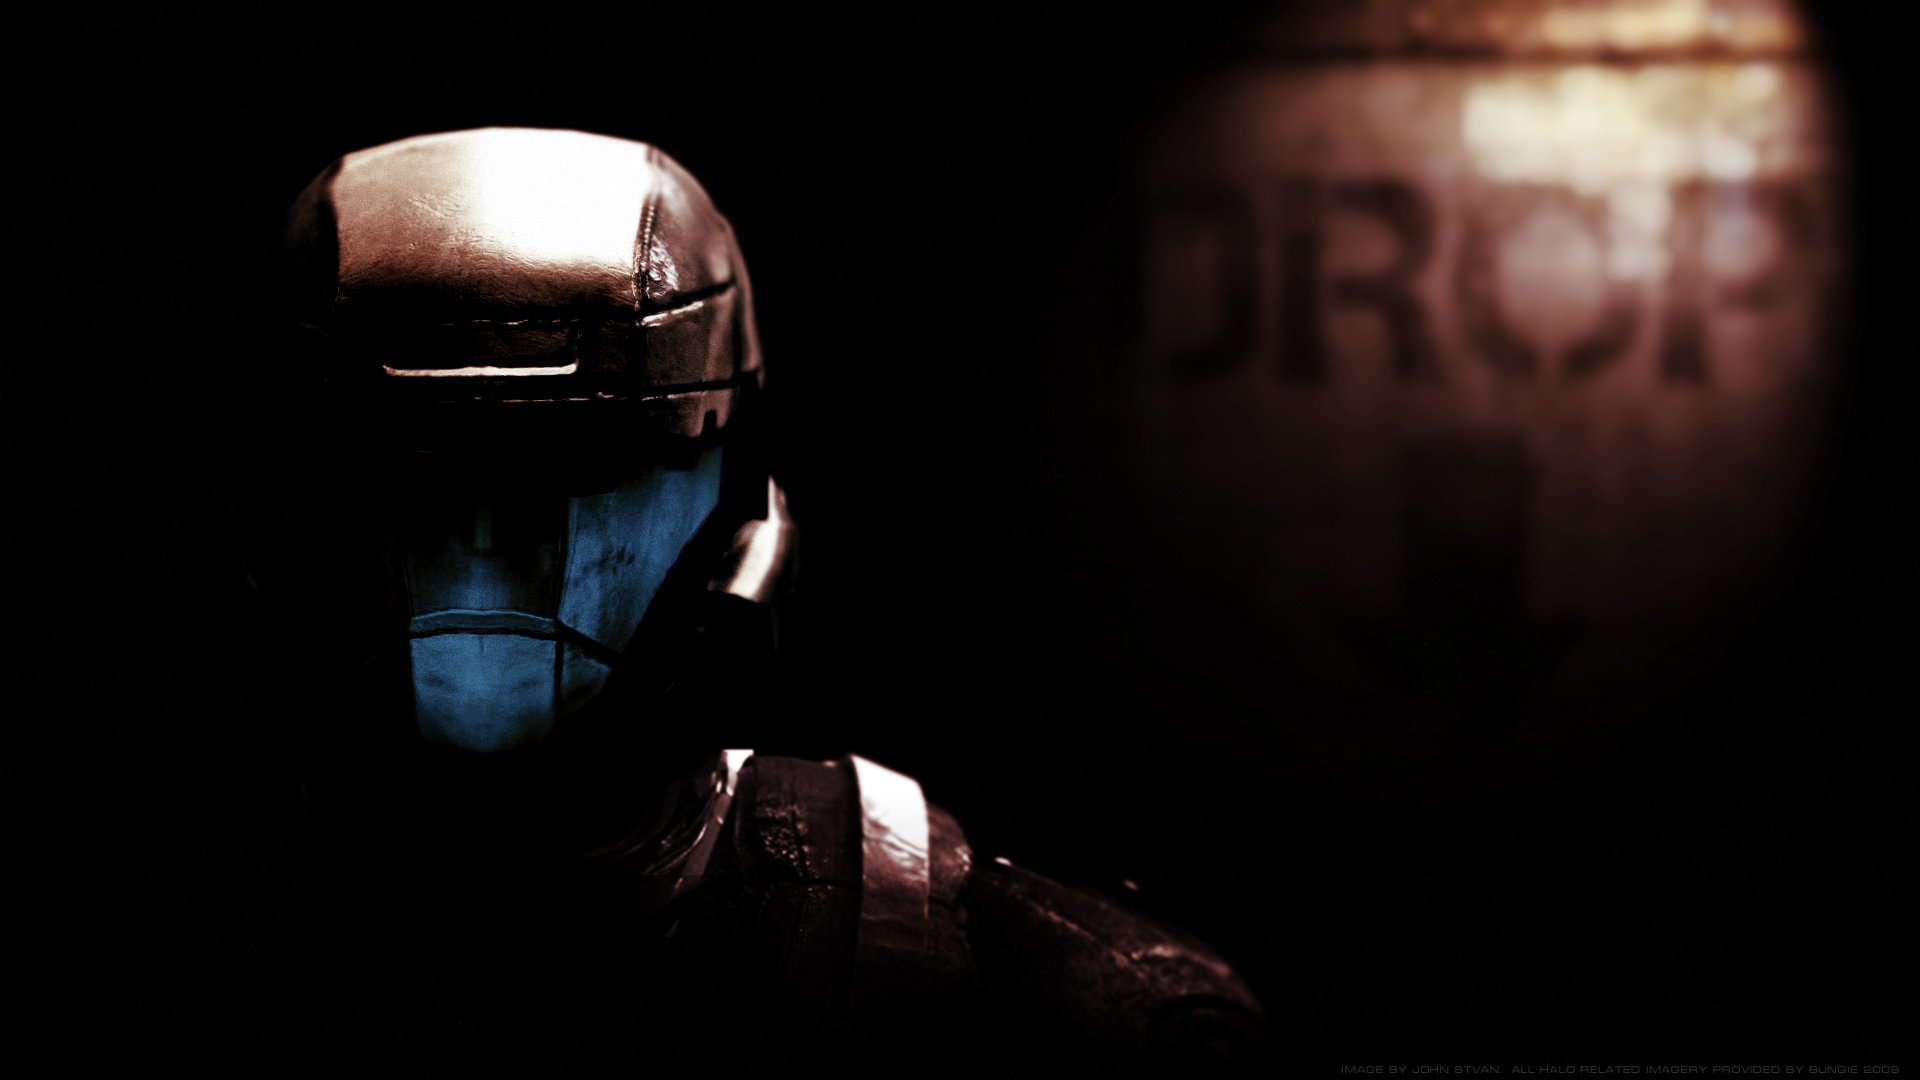 14 Halo 3 Odst Hd Wallpapers Background Images Wallpaper Abyss